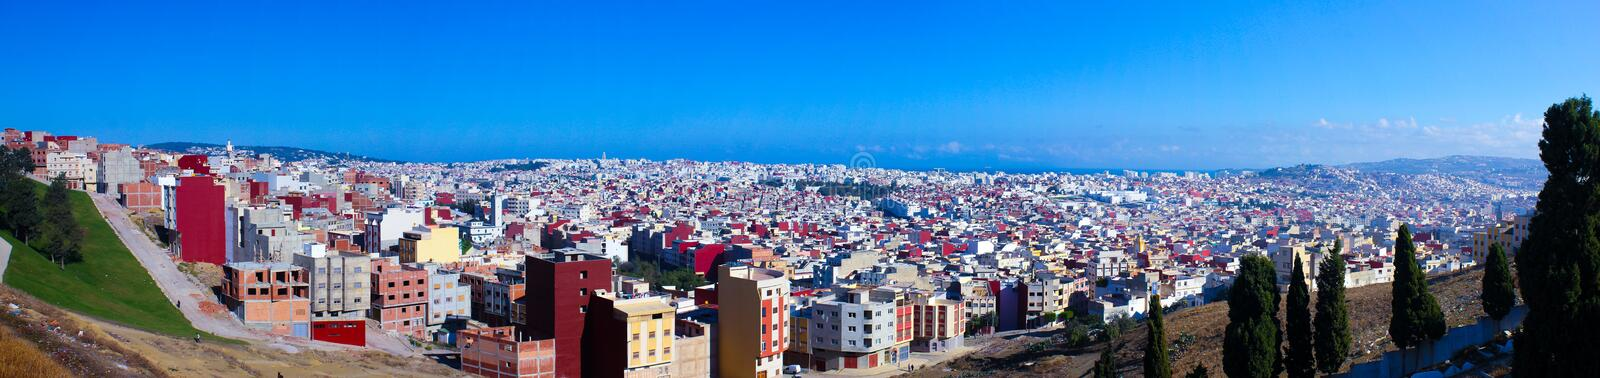 Sky, City, Tree, Mountain royalty free stock images